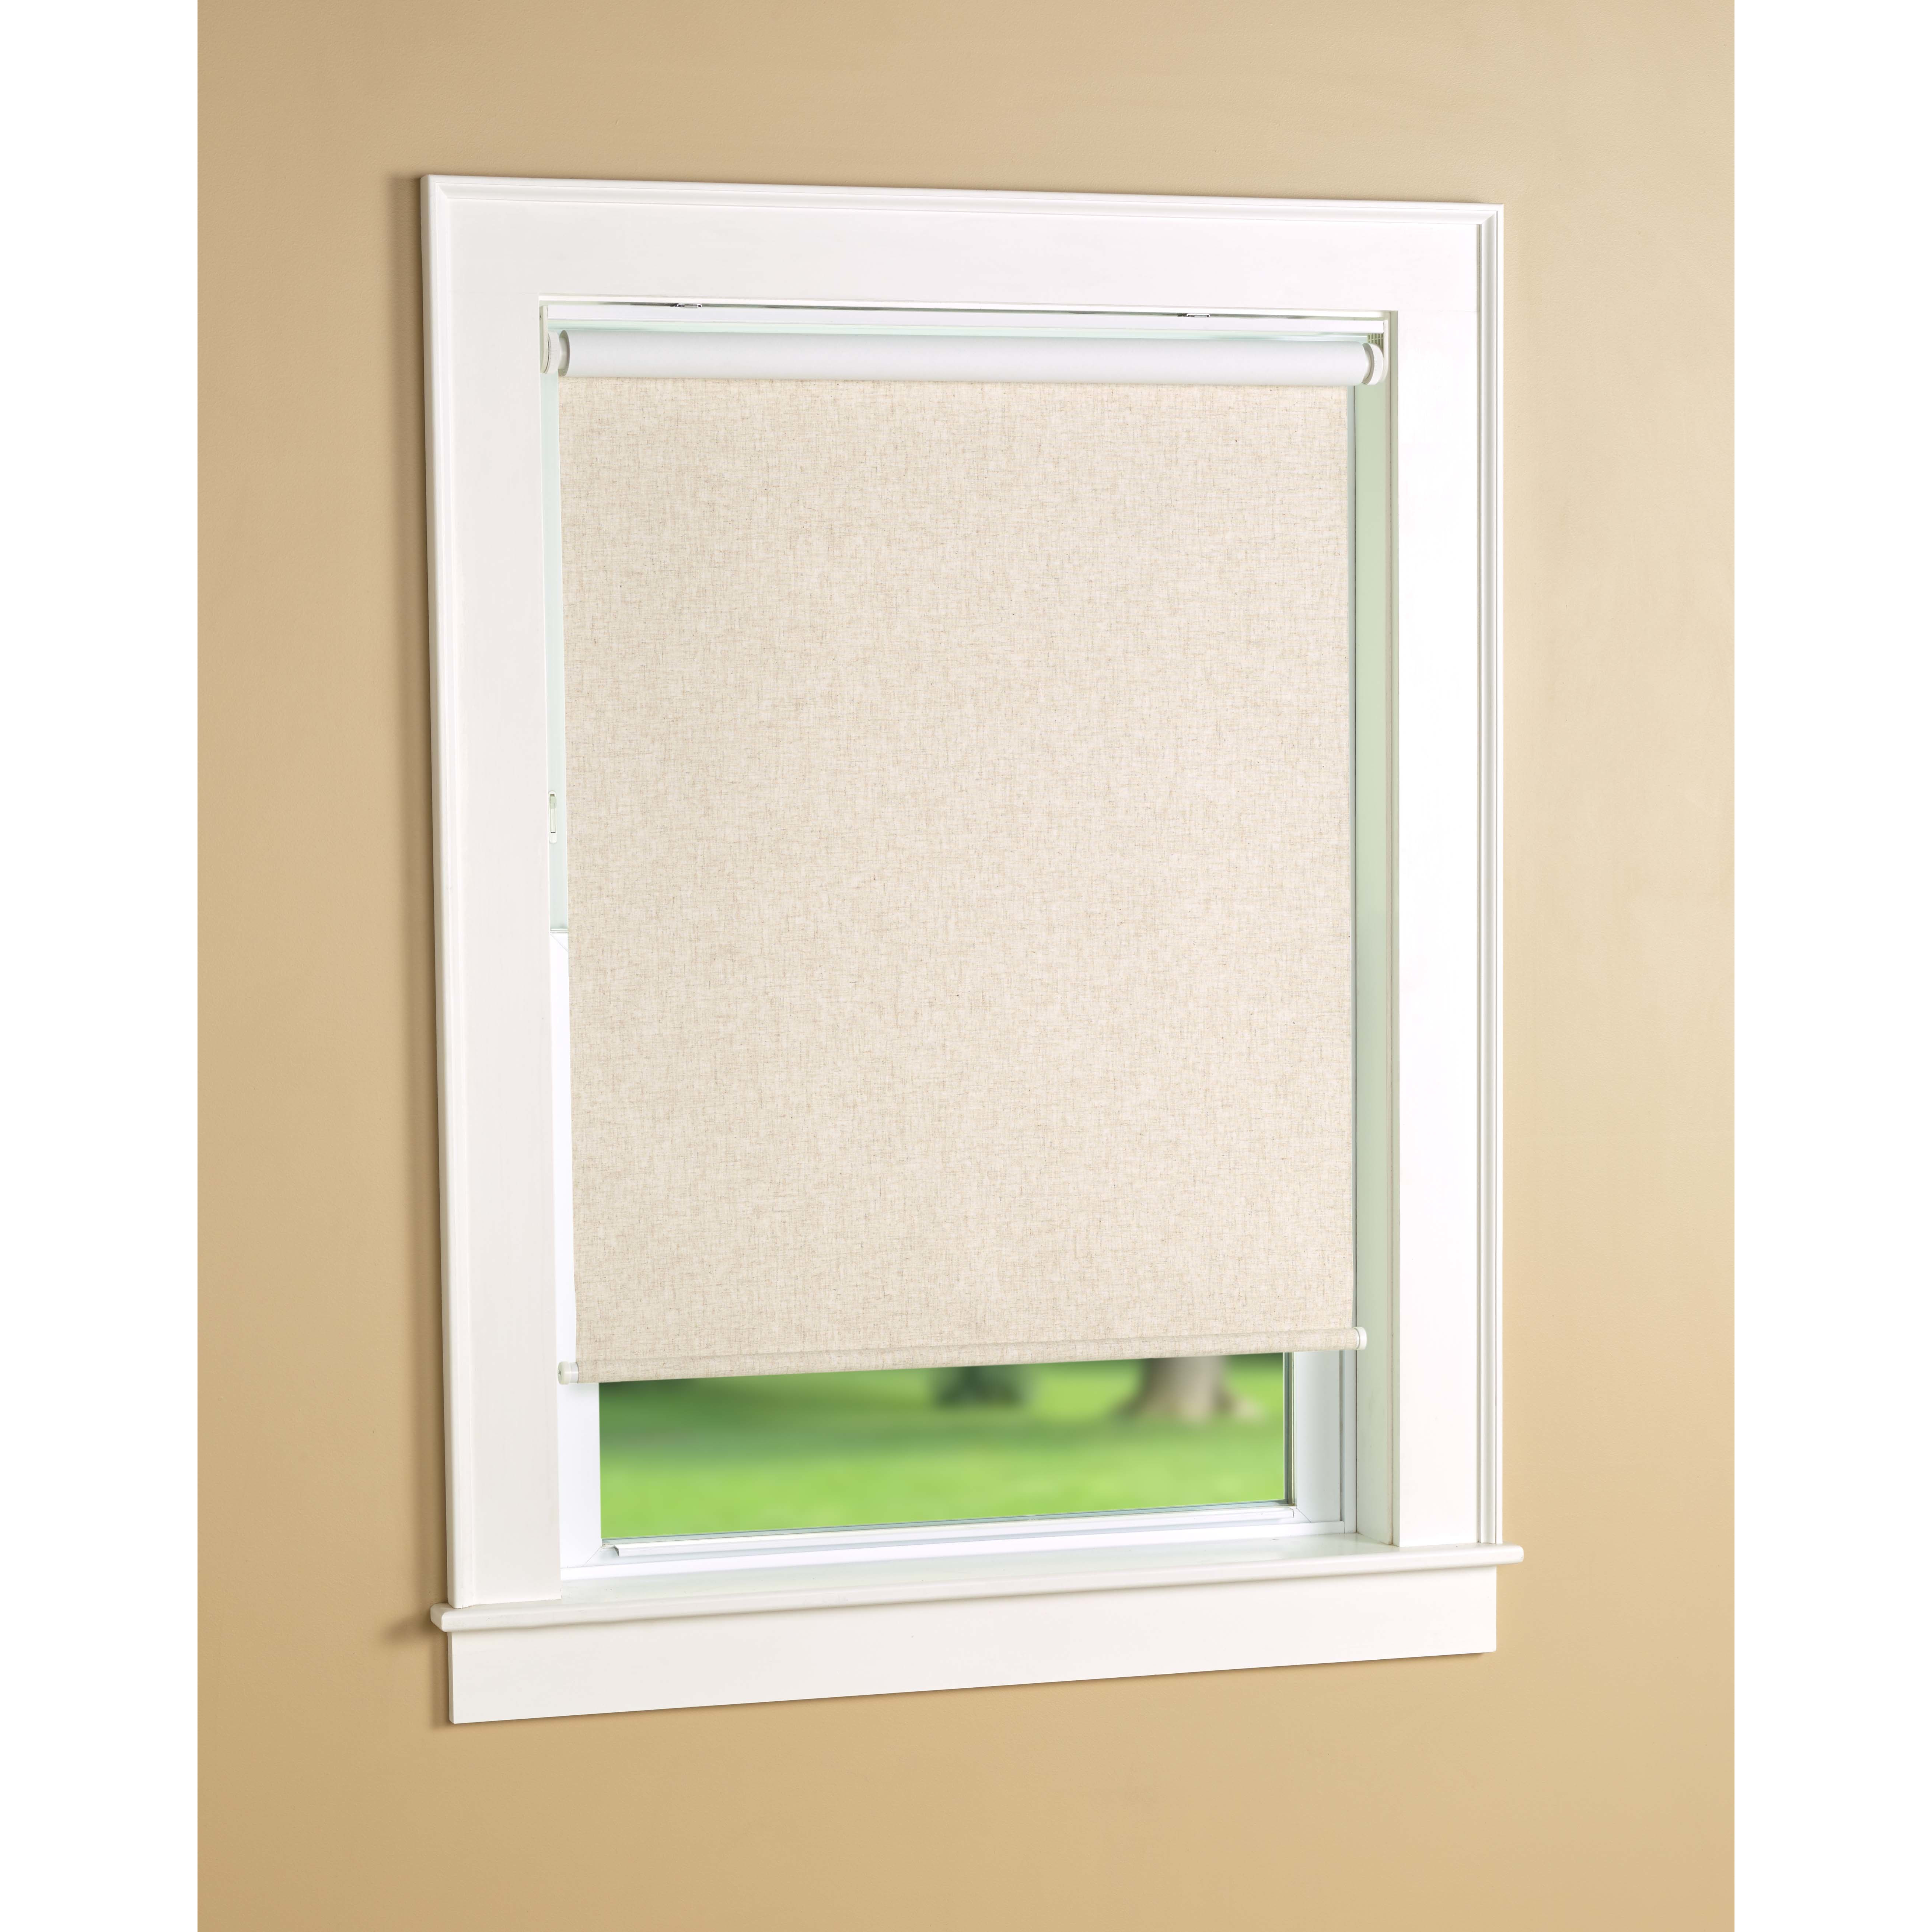 Menards Push Mower | Lowes Window Coverings | Menards Window Blinds